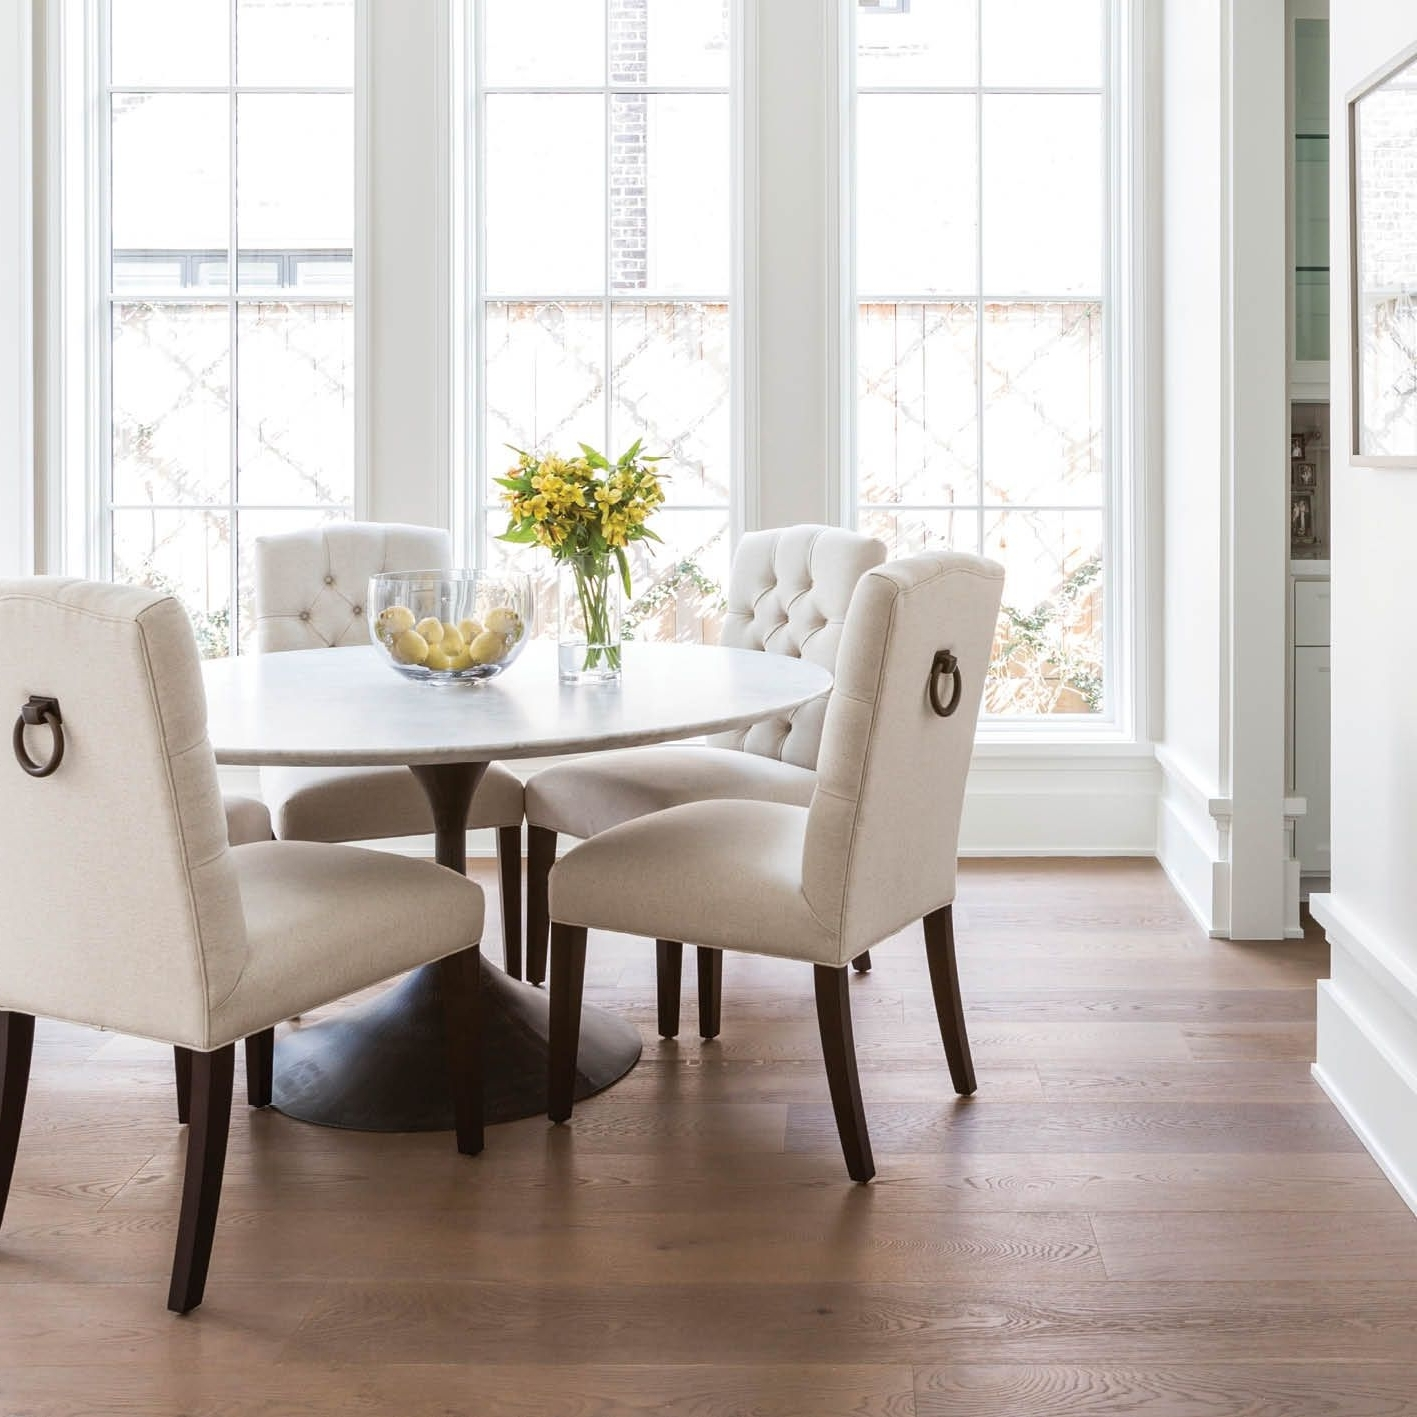 Caden 5 Piece Round Dining Sets With Upholstered Side Chairs Pertaining To Most Recently Released Marie Flanigan Interiors – Citybook Guiding Light – Bright Breakfast (View 3 of 25)